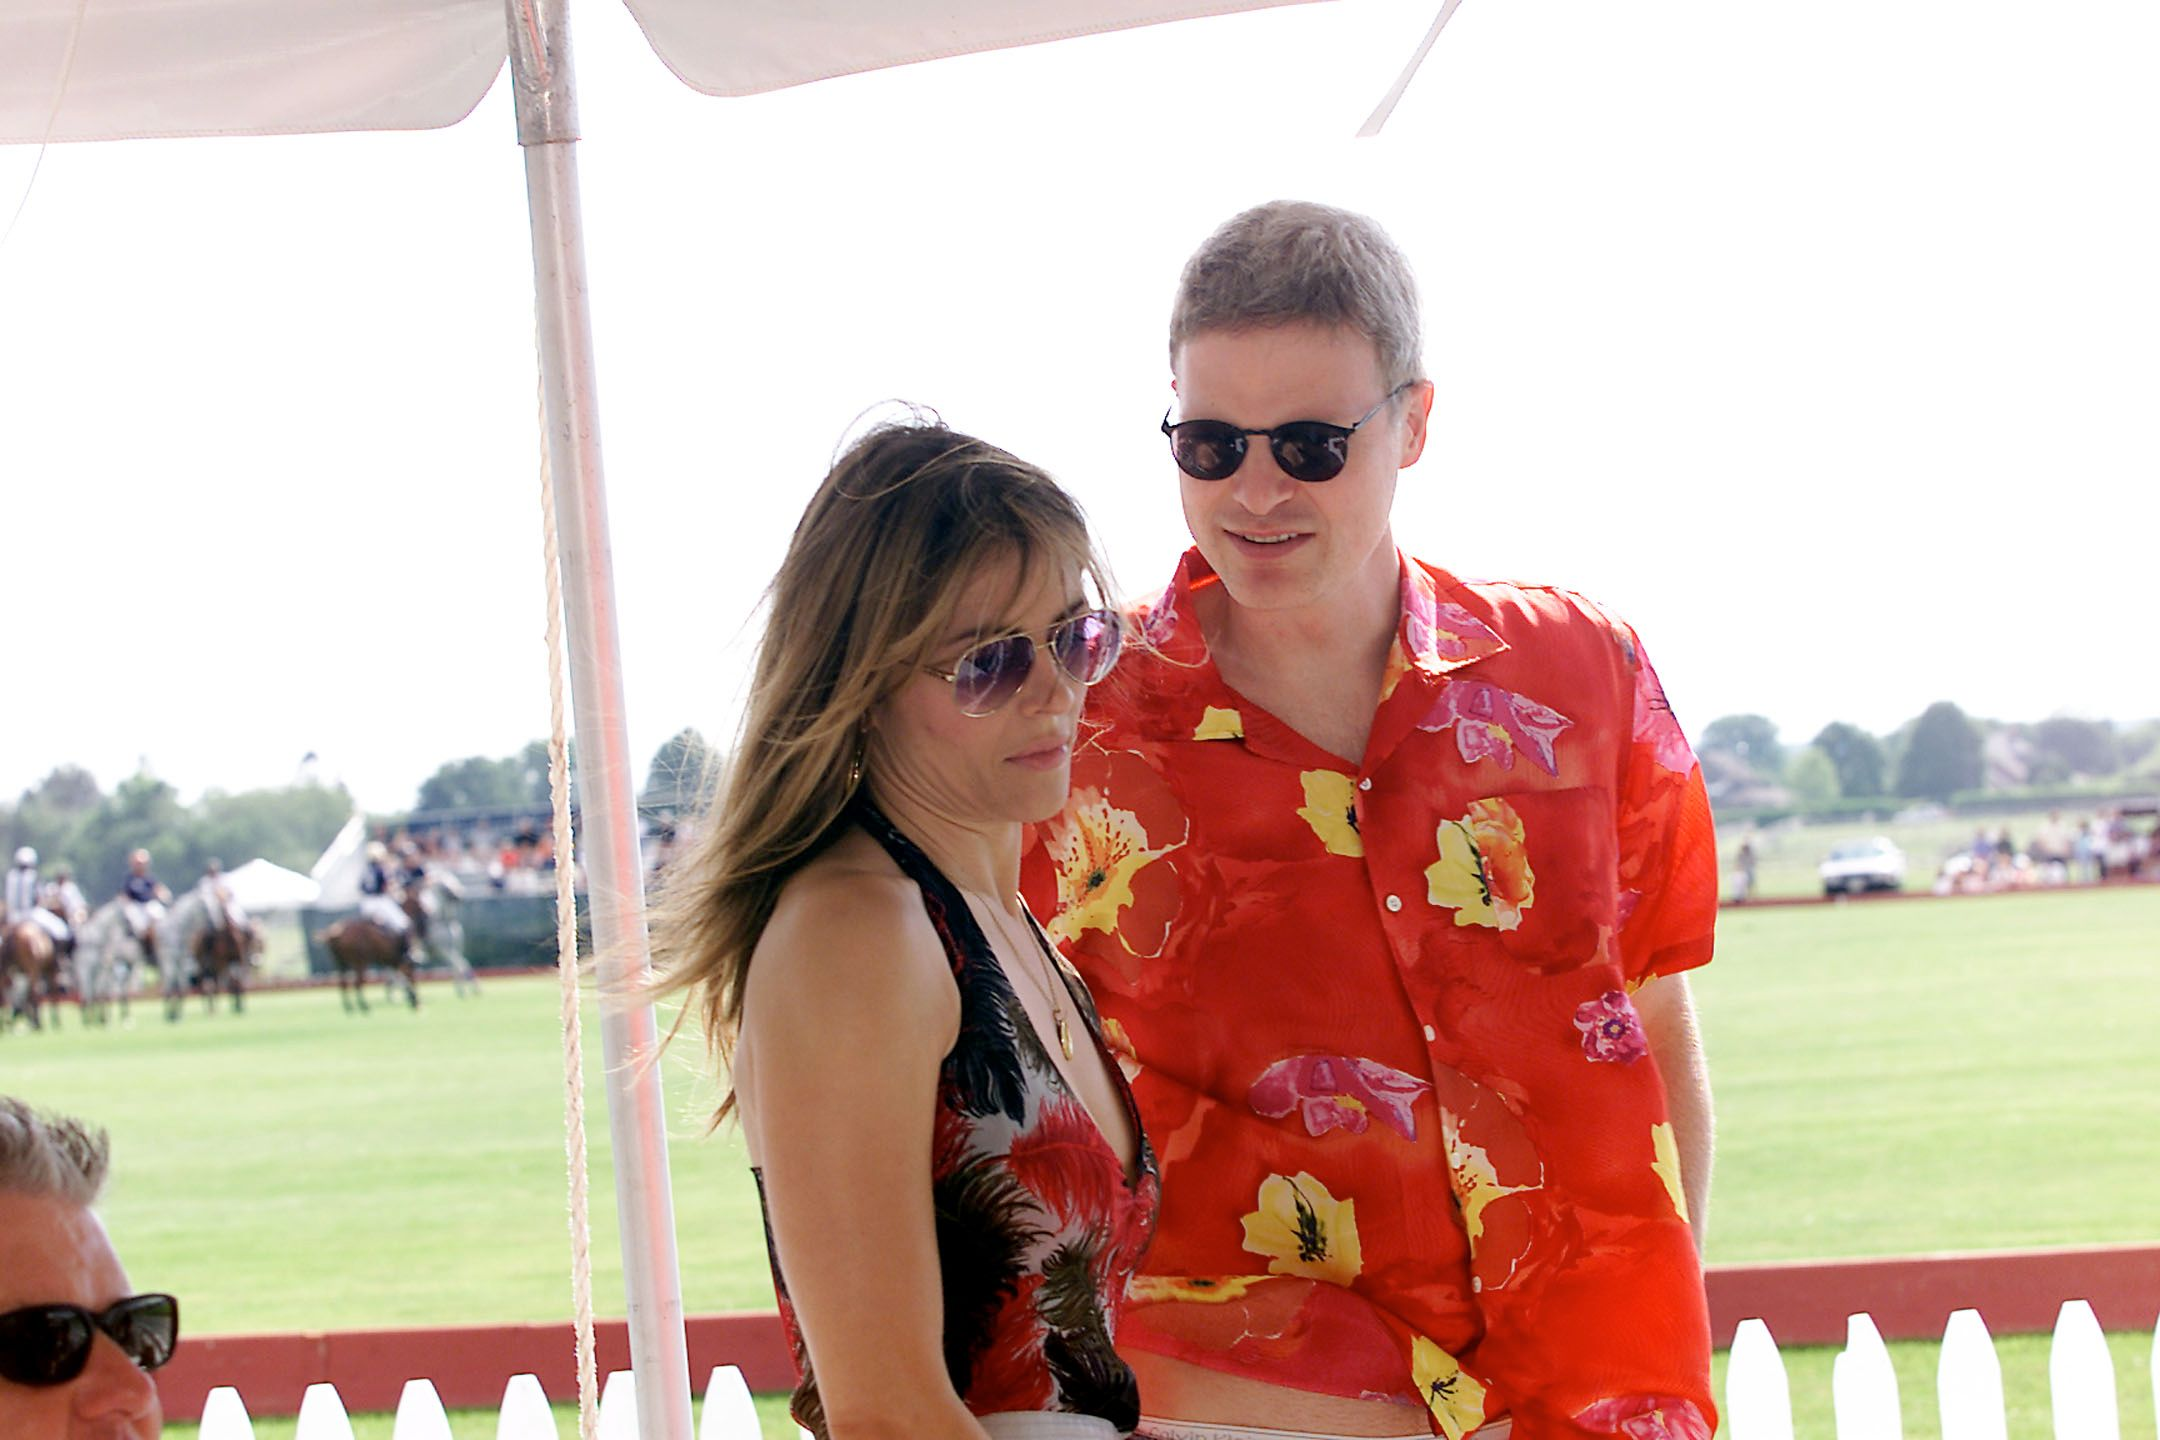 Elizabeth Hurley and Steven Bing at opening day at the Mercedes-Benz Polo Challenge at the Bridgehampton Polo Club in Bridgehampton, New York, June 14, 2001. | Source: Getty Images